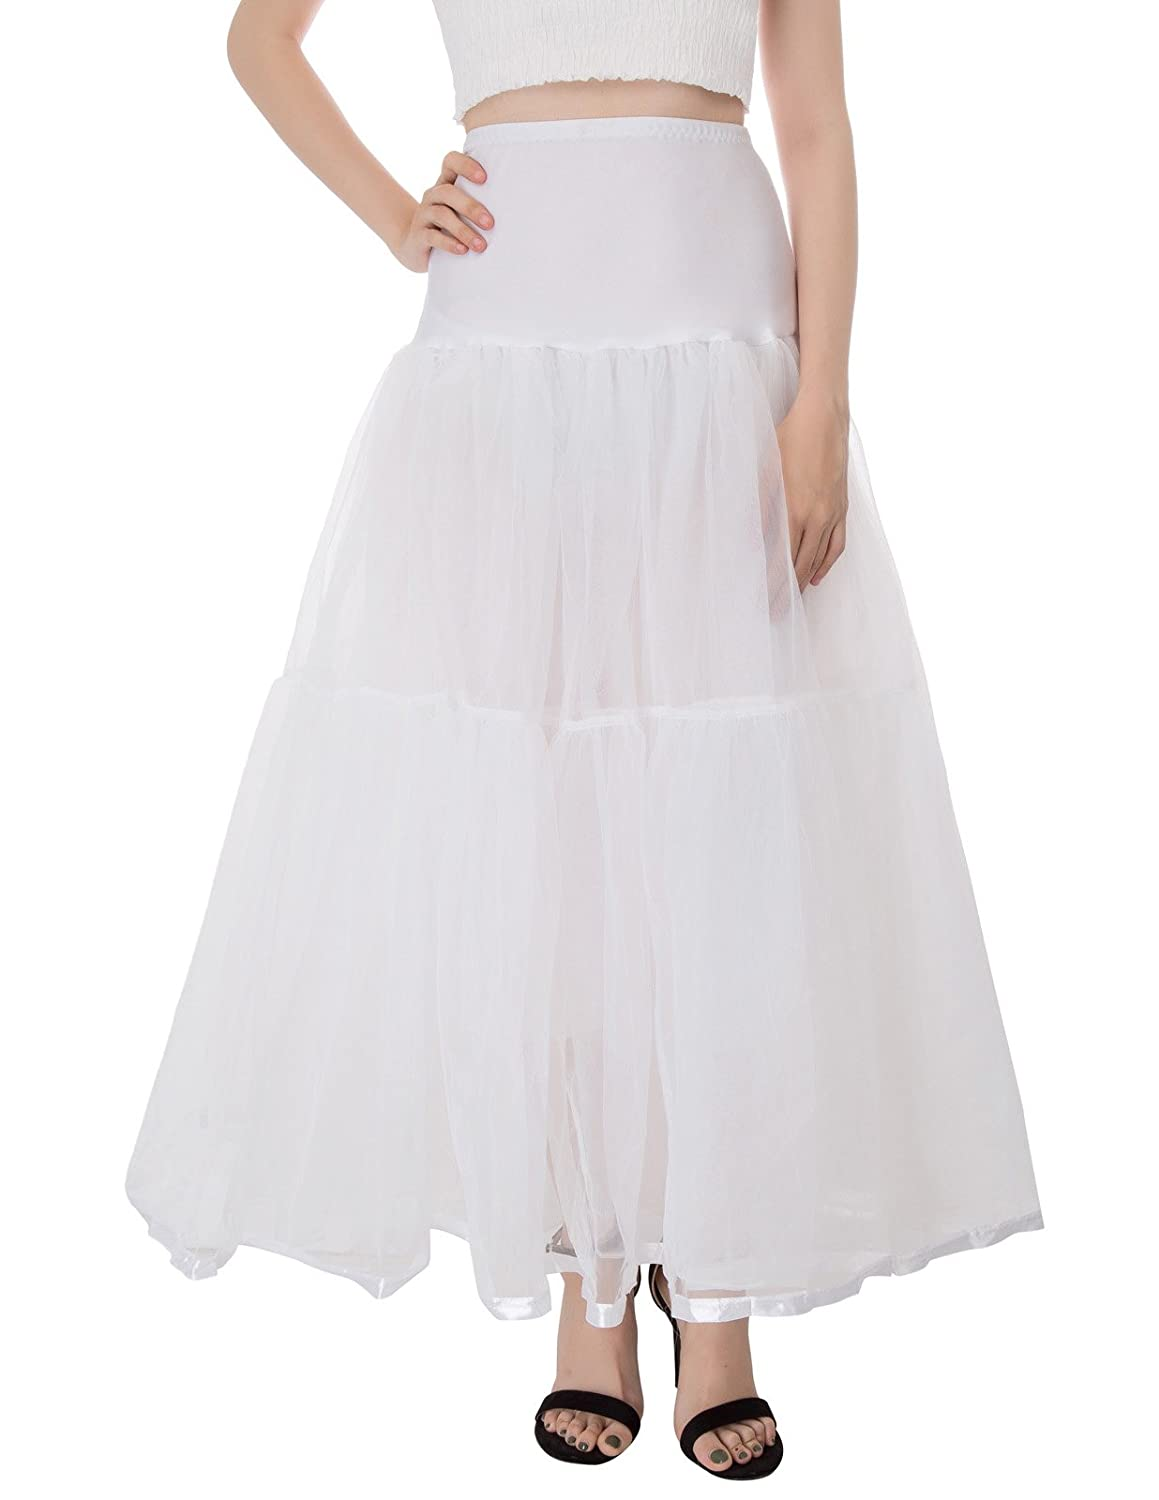 Crinoline Skirt | Crinoline Slips | Crinoline Petticoat Ankle Length Petticoats Bridal Underskirt Hoopless GRACE KARIN Womens  $19.99 AT vintagedancer.com